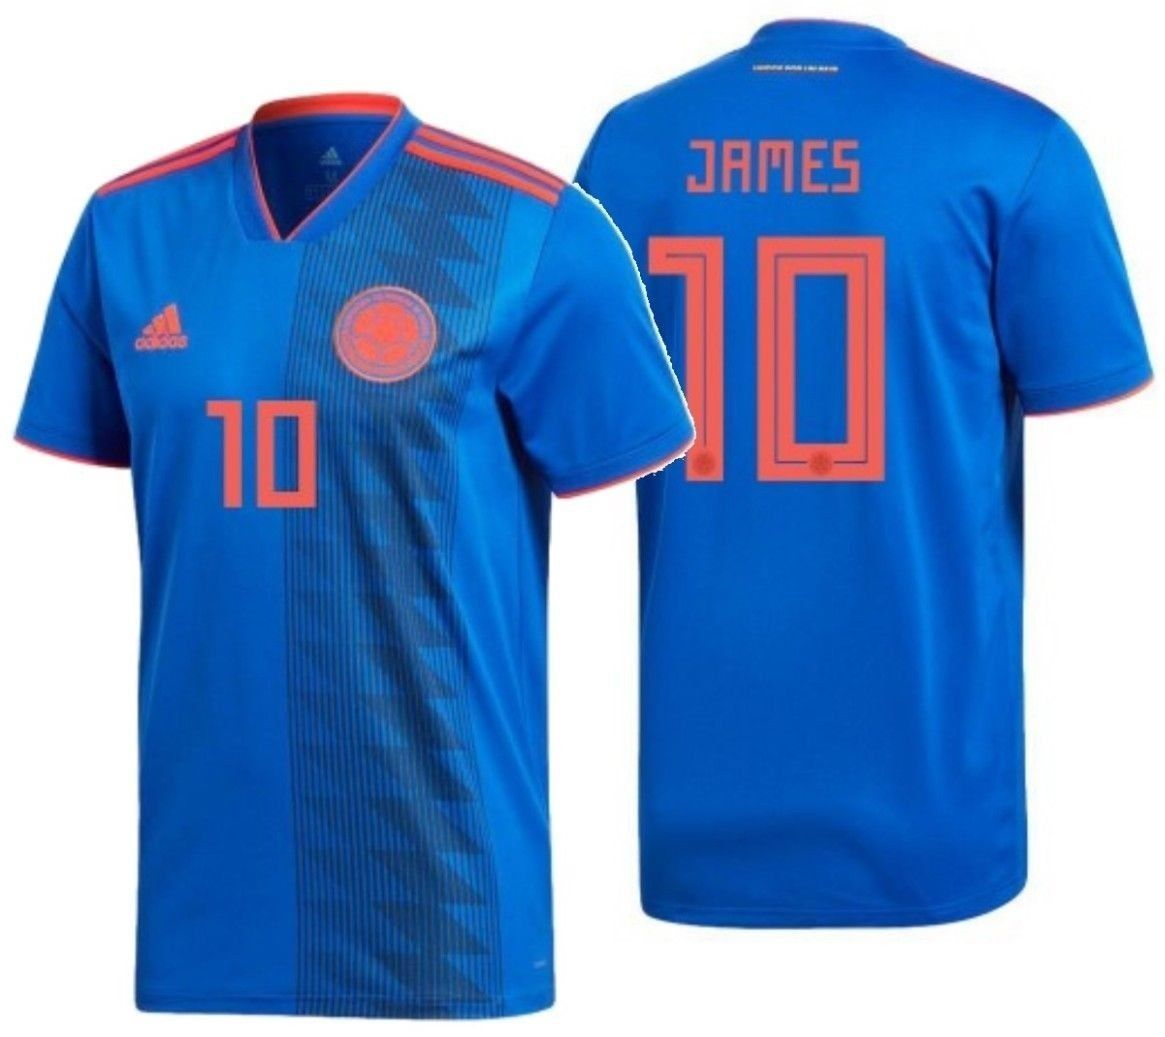 57. 57. Previous. ADIDAS JAMES RODRIGUEZ COLOMBIA AWAY JERSEY FIFA WORLD  CUP 2018. ADIDAS JAMES ... 4fdd21d6a